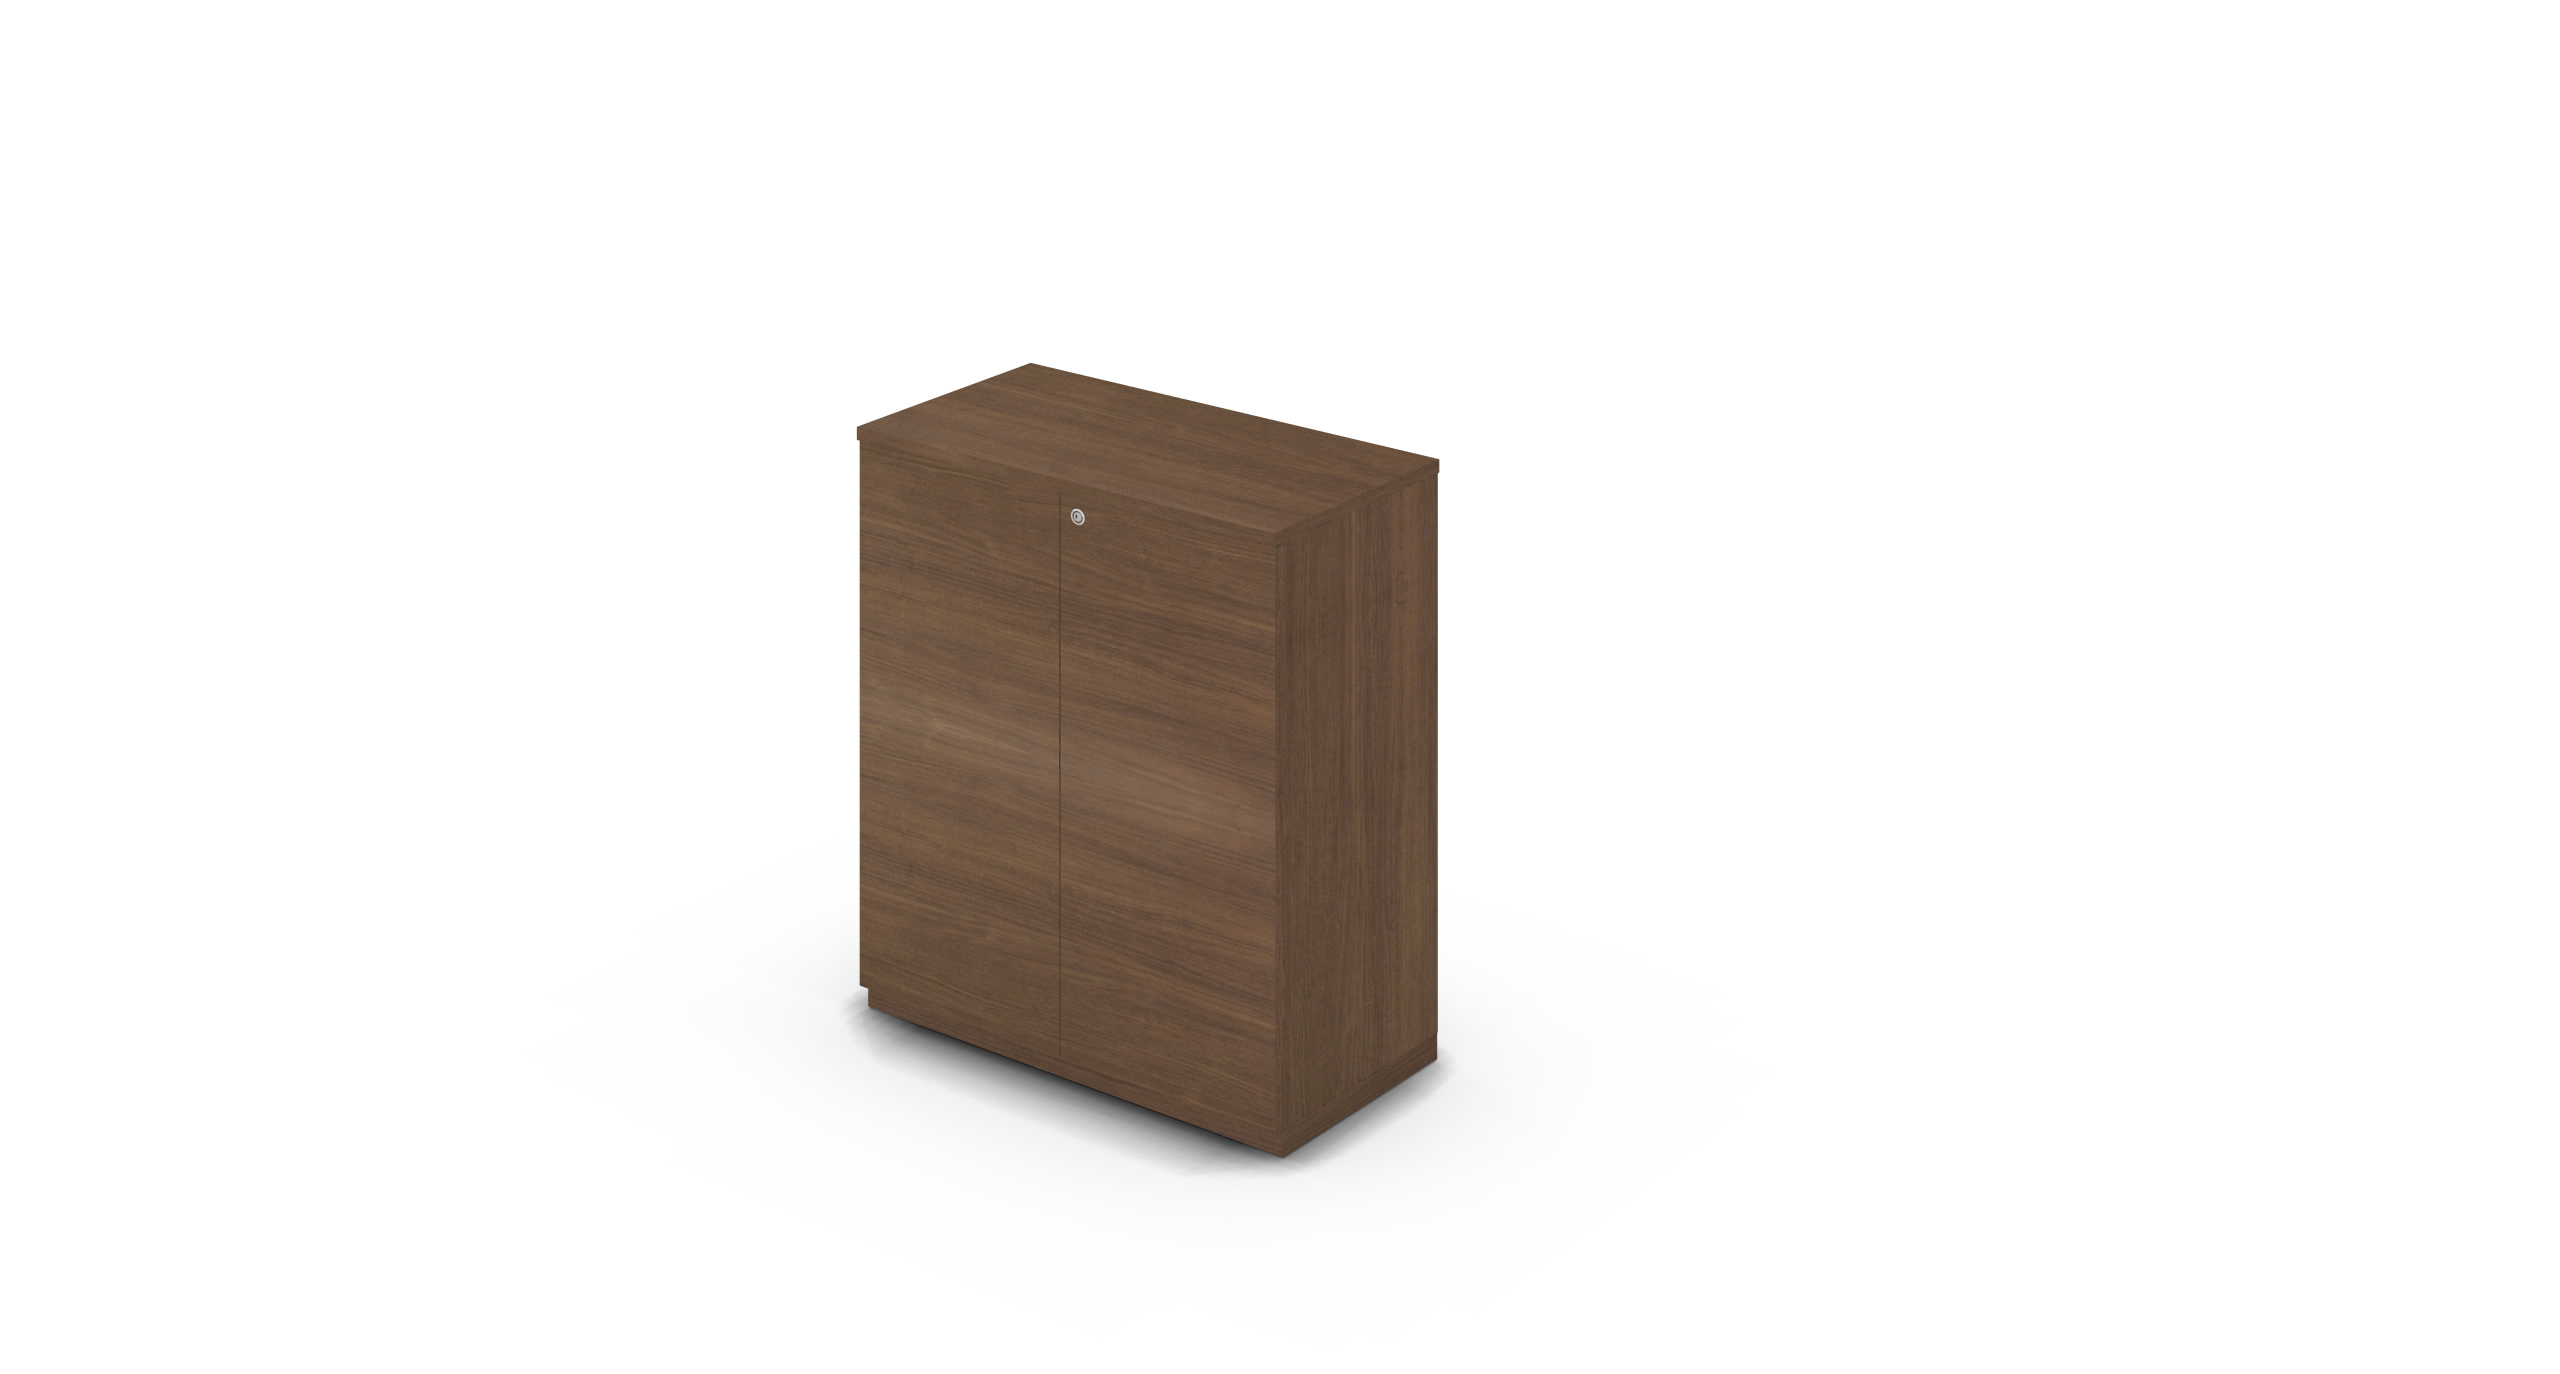 Cabinet_900x450x1125_HD_Walnut_Push_WithCylinder